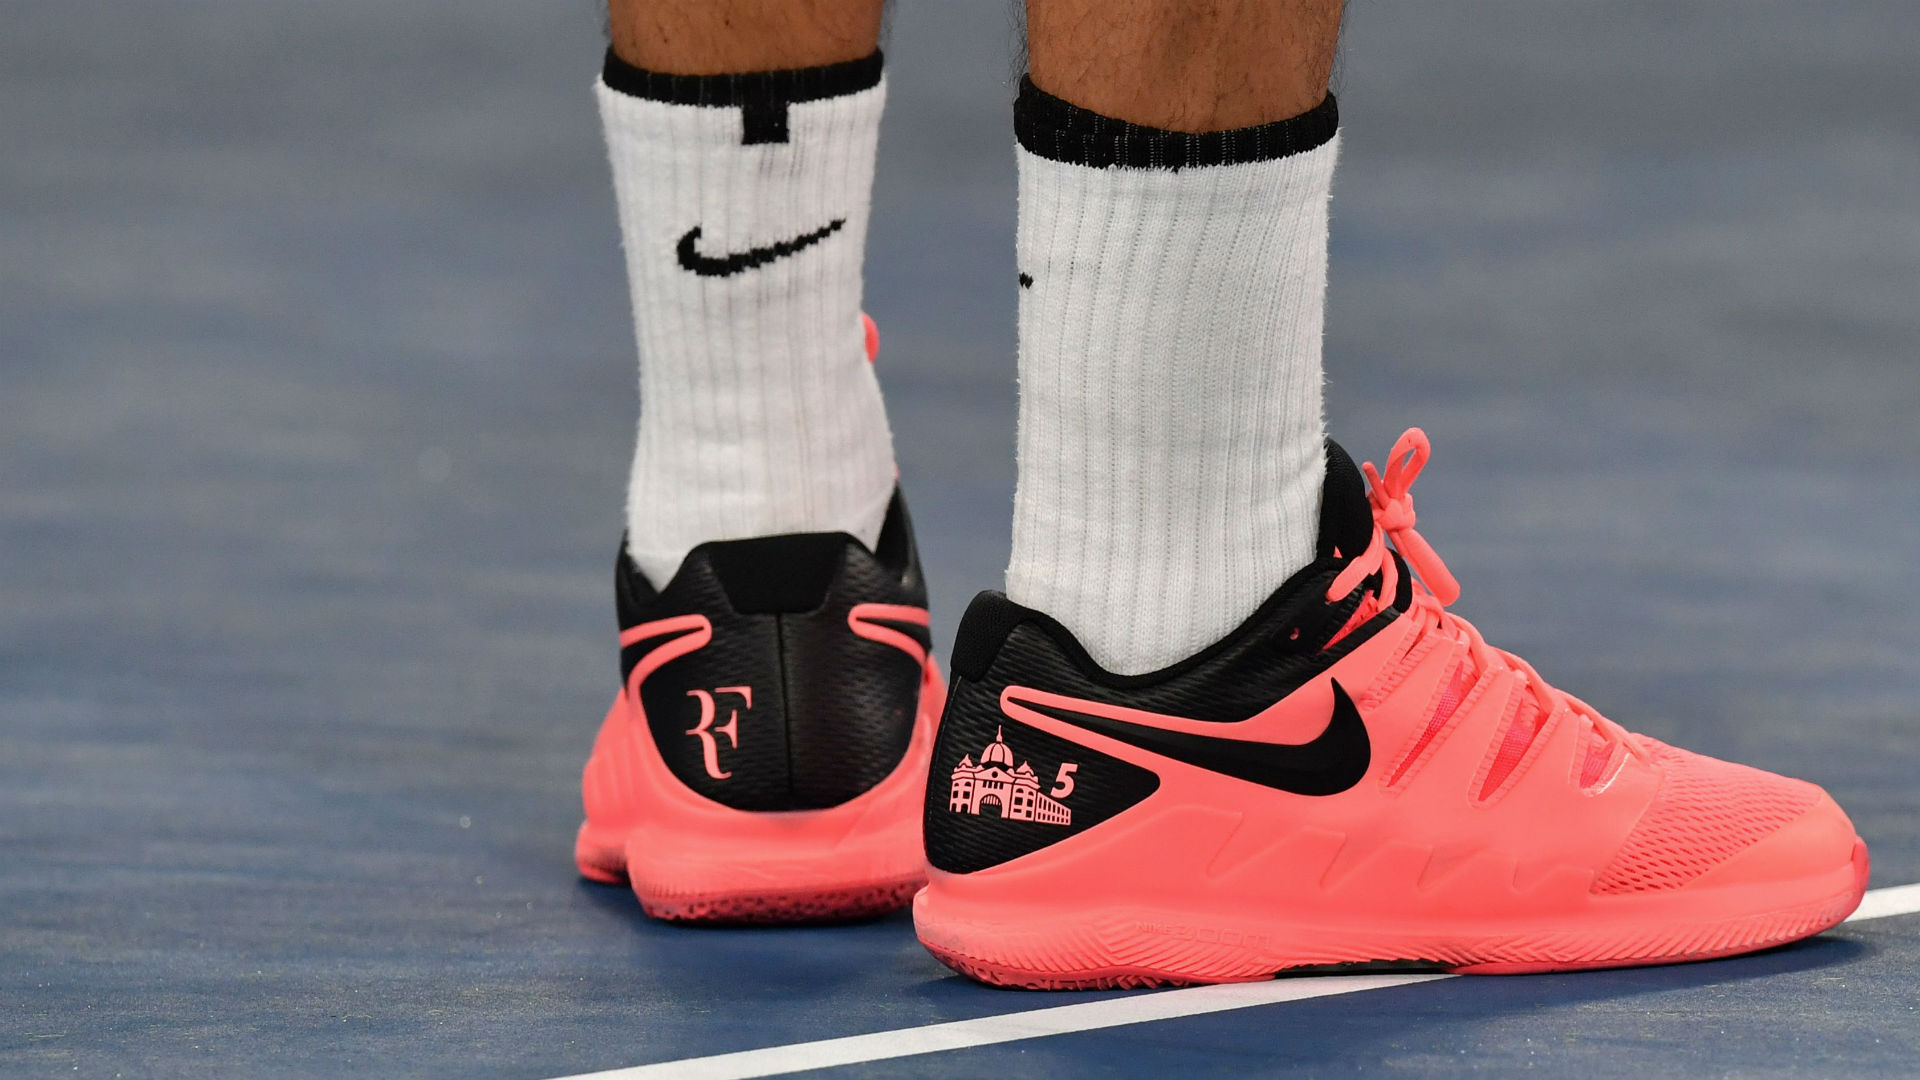 4ea67bccc95512 The image Roger Federer really wanted on his tennis shoes